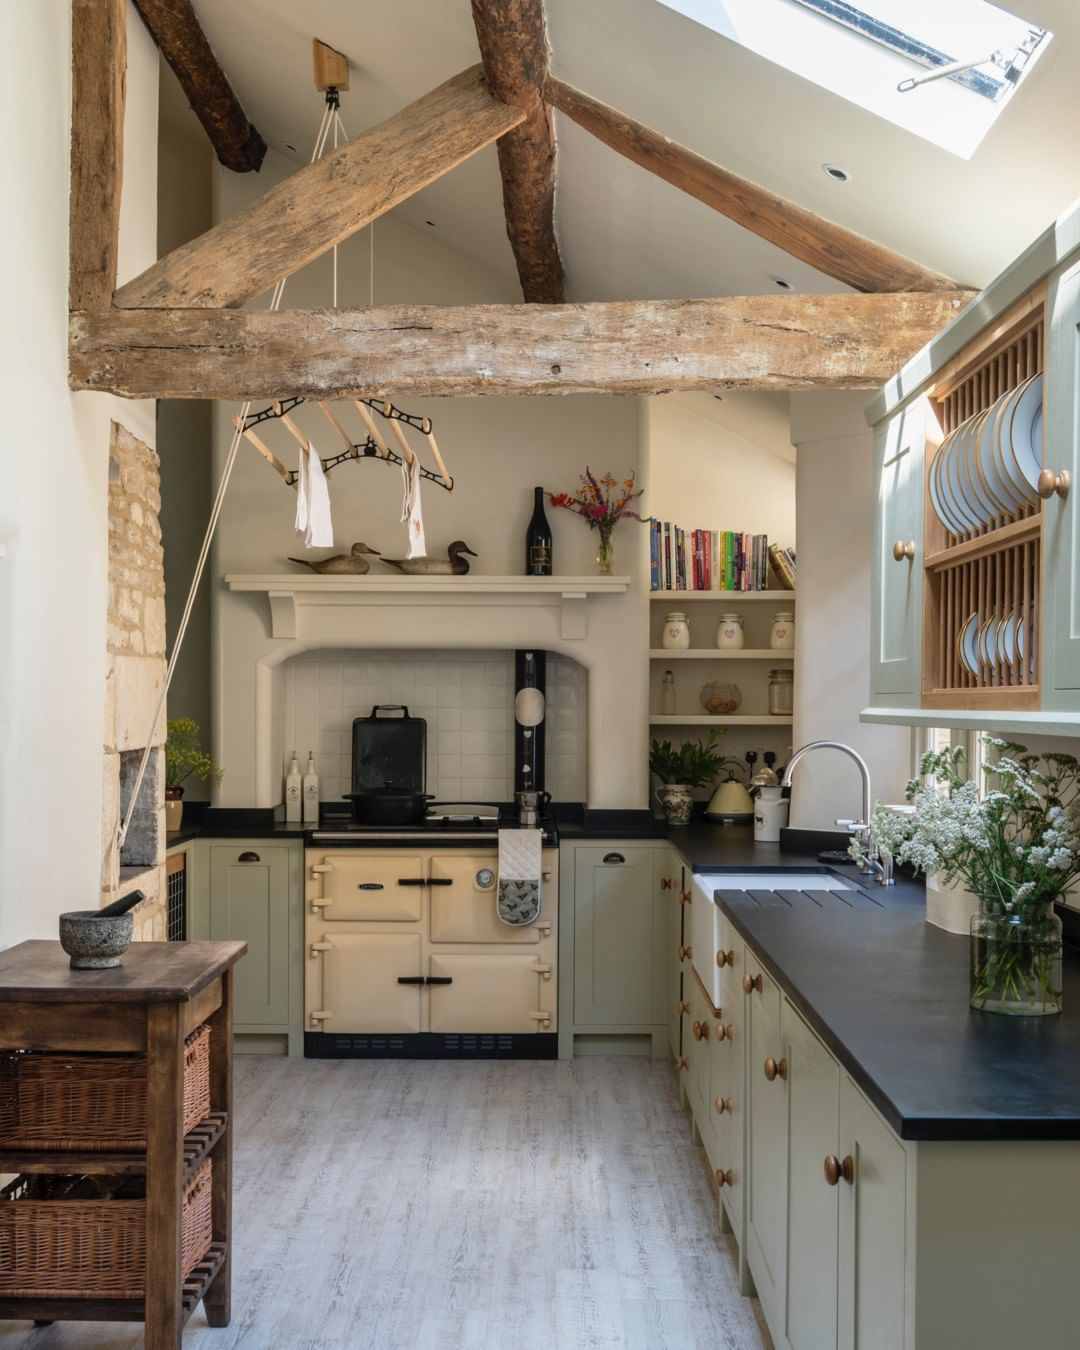 The kitchen of a recently completed project in a beautiful